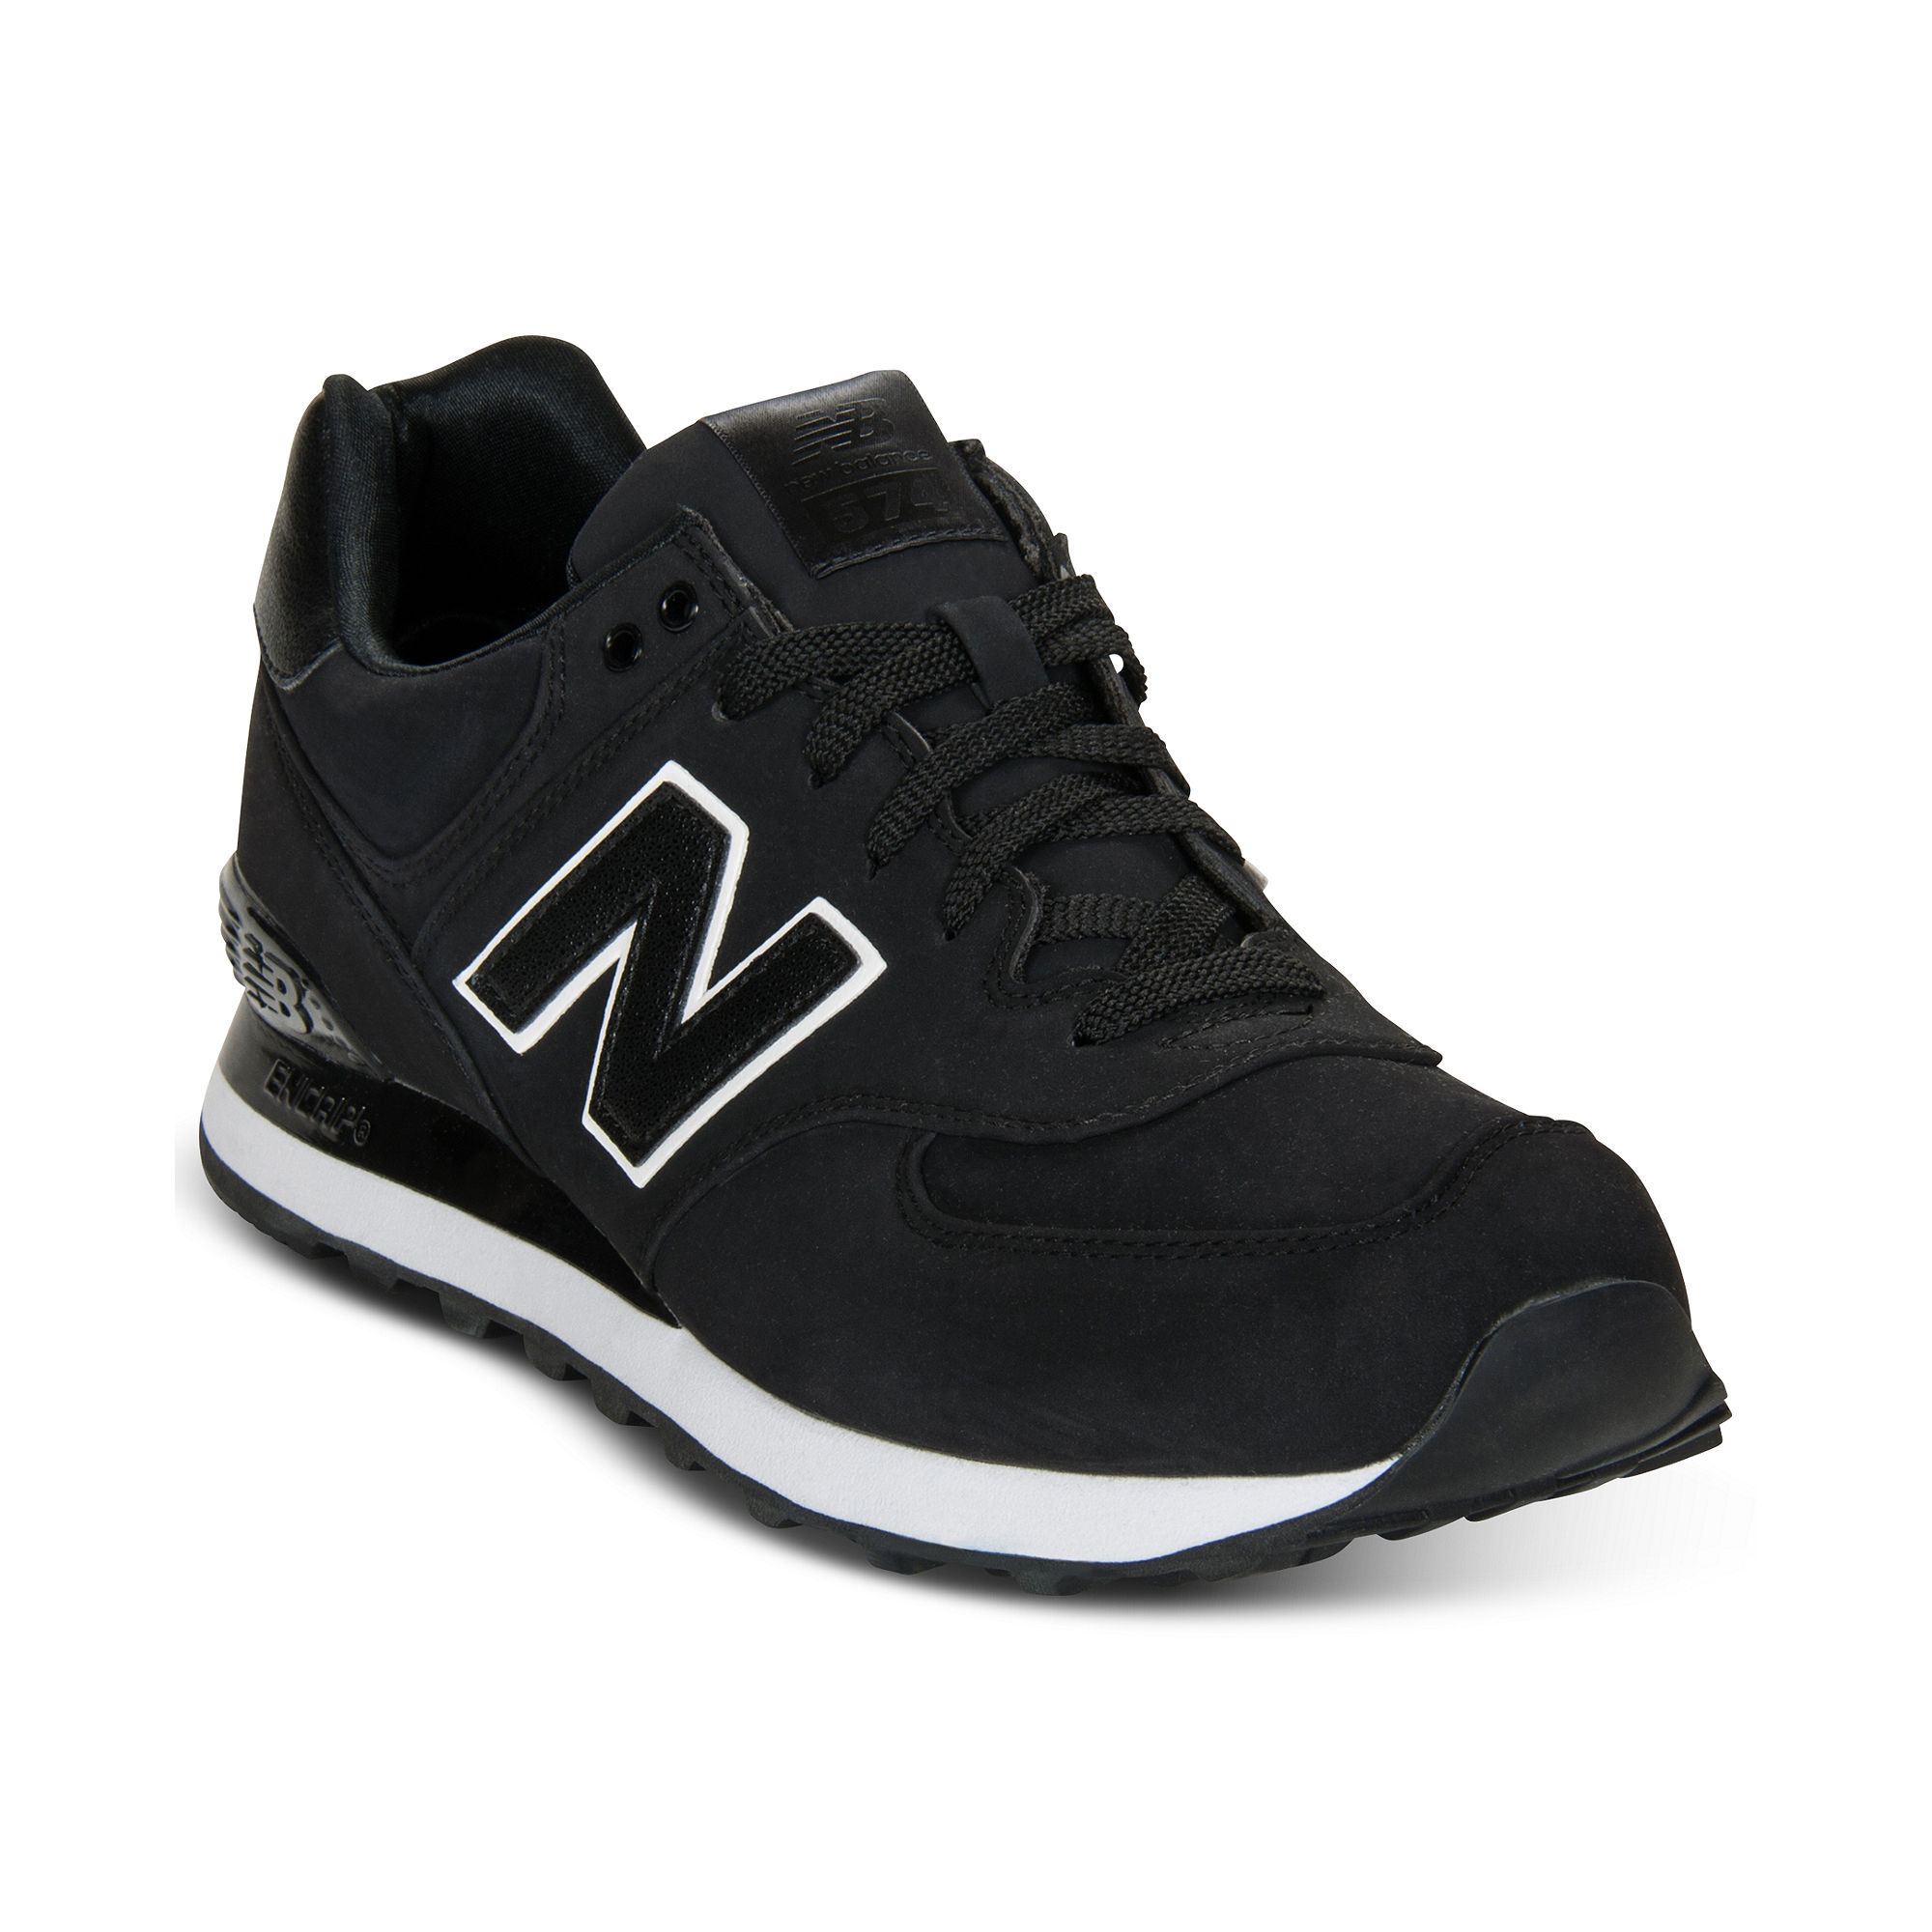 newest collection faaab 4dd3f New Balance Black 574 Sneakers for men